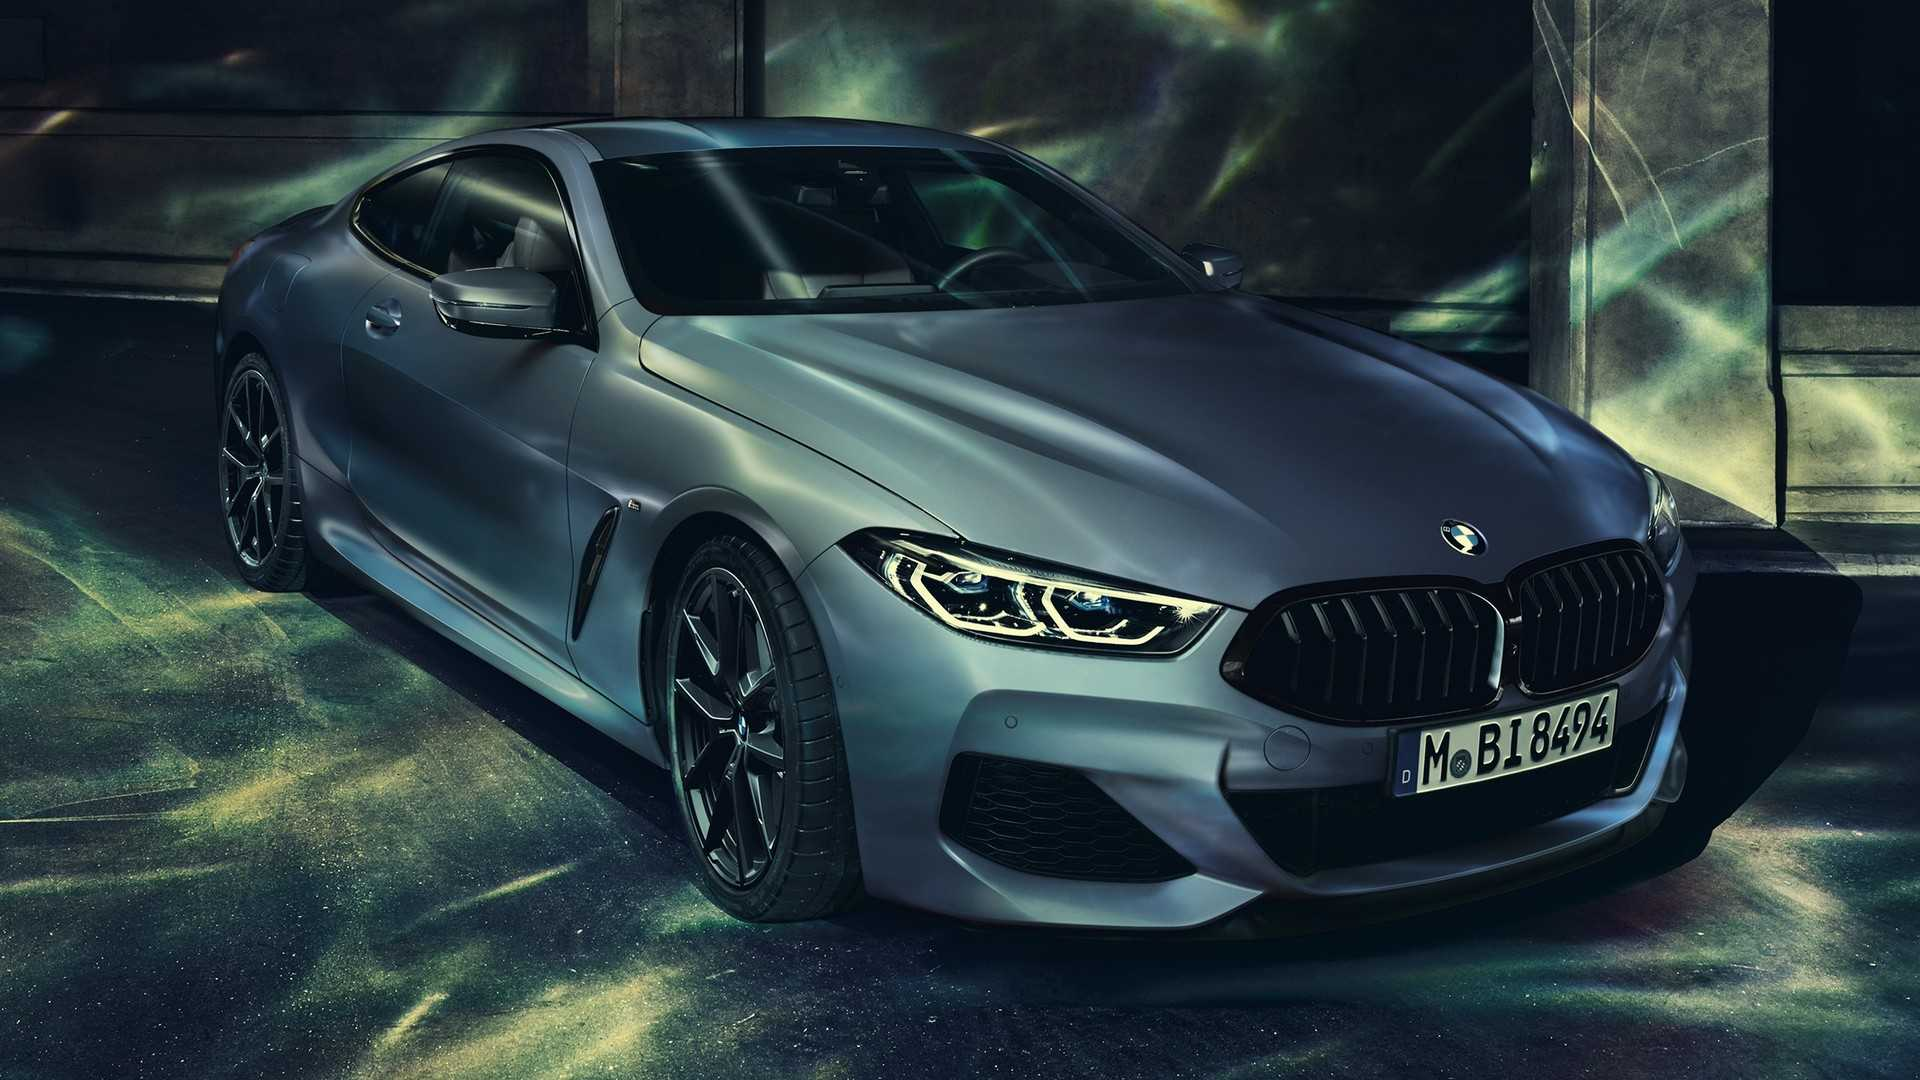 2019-bmw-m850i-xdrive-coupe-first-edition (1)